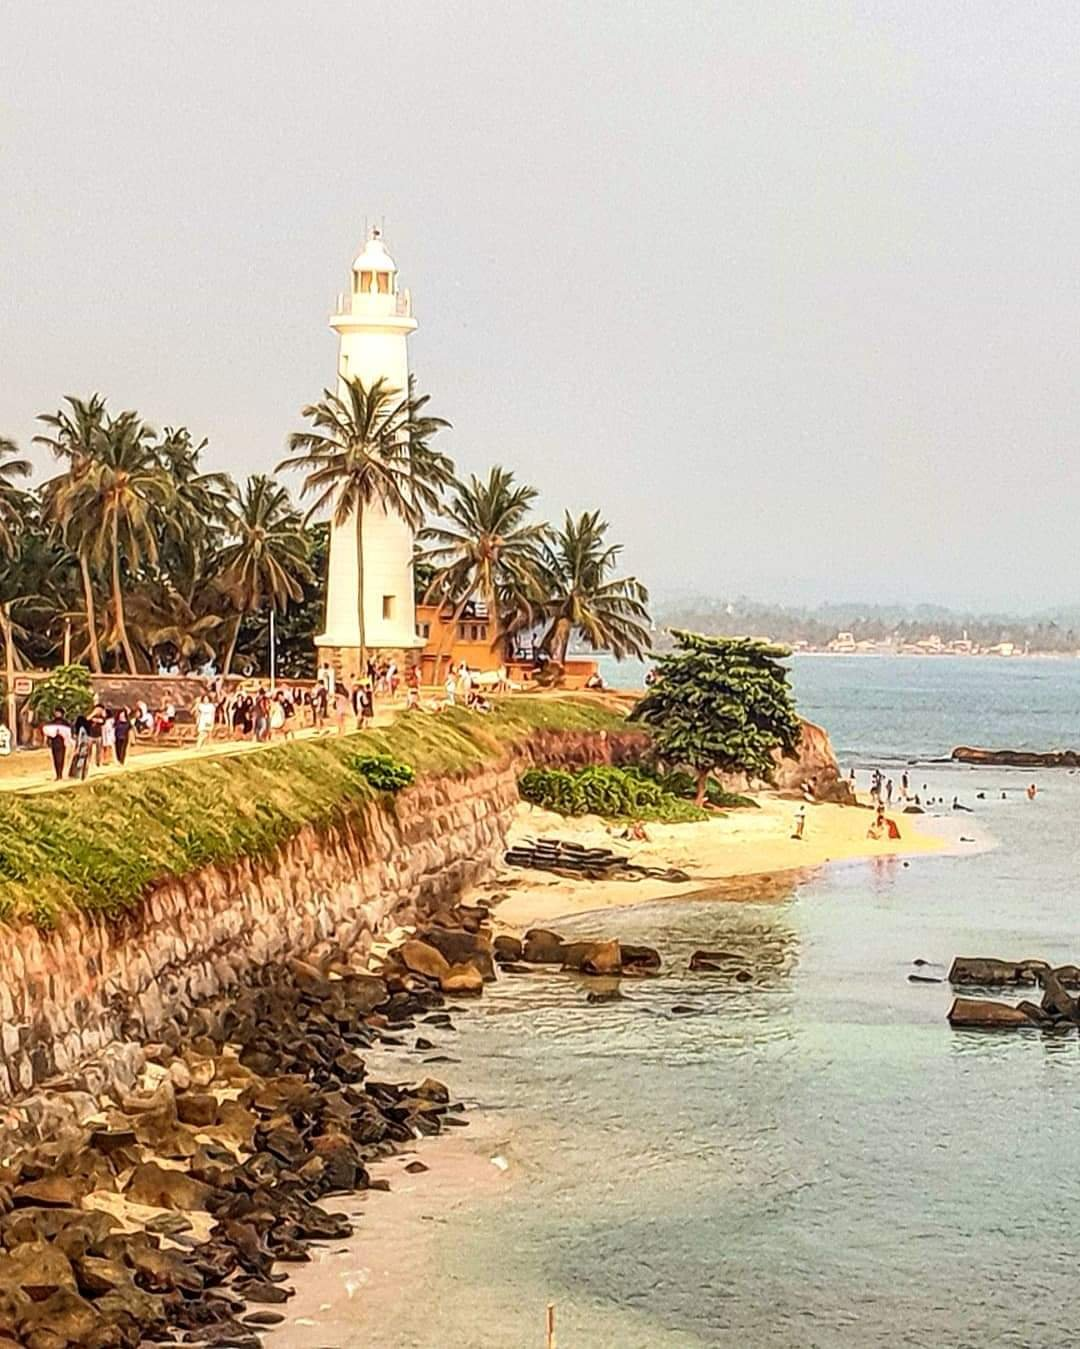 View of the Galle lighthouse in Sri Lanka